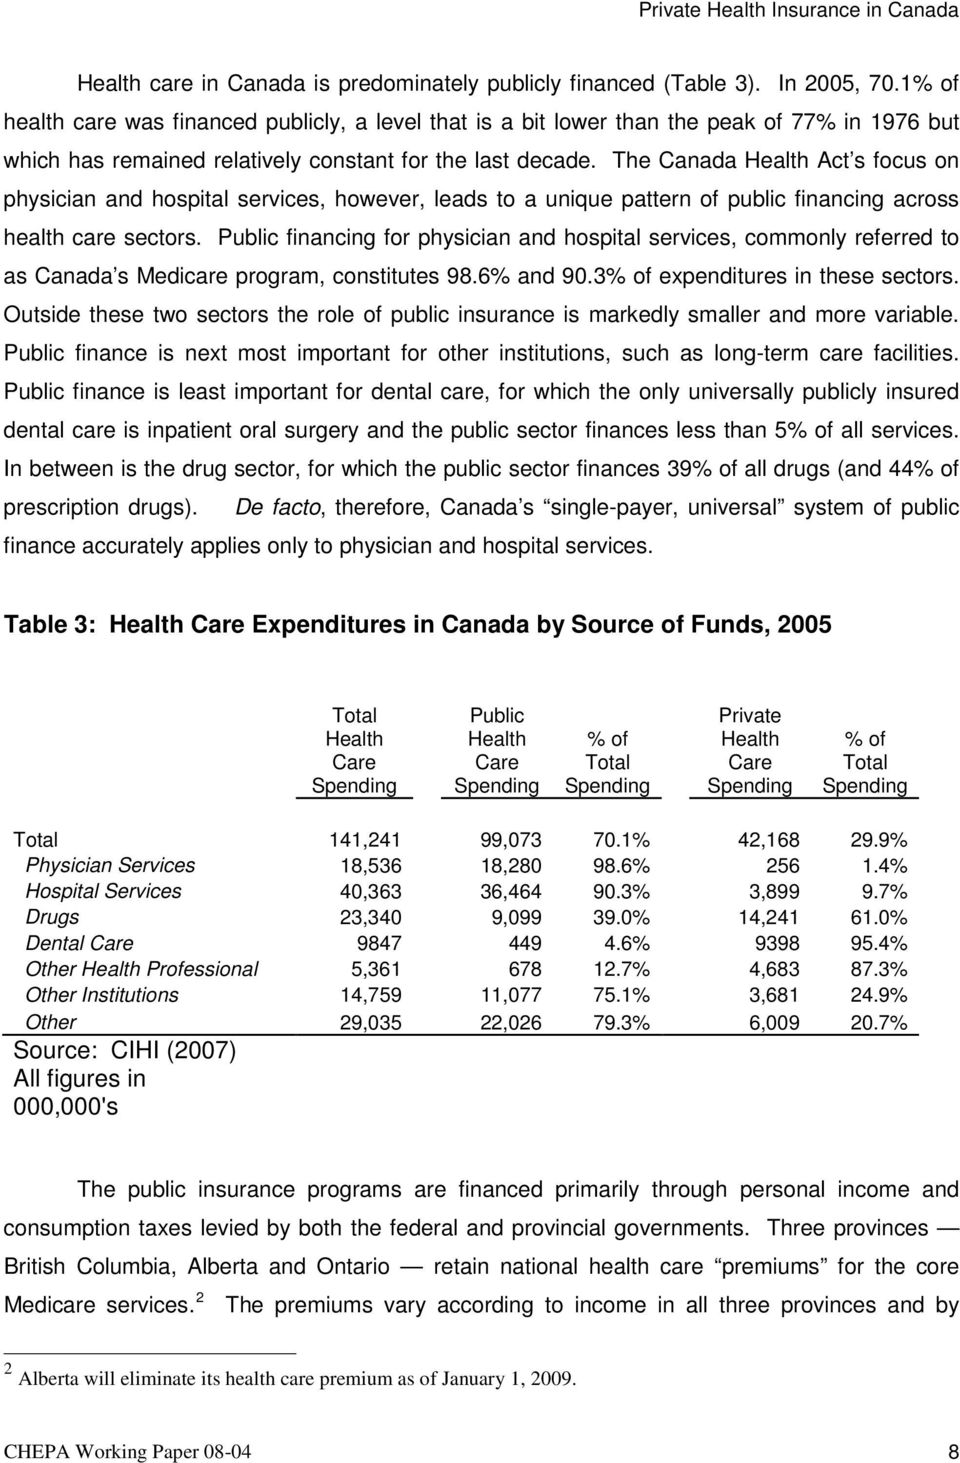 The Canada Health Act s focus on physician and hospital services, however, leads to a unique pattern of public financing across health care sectors.